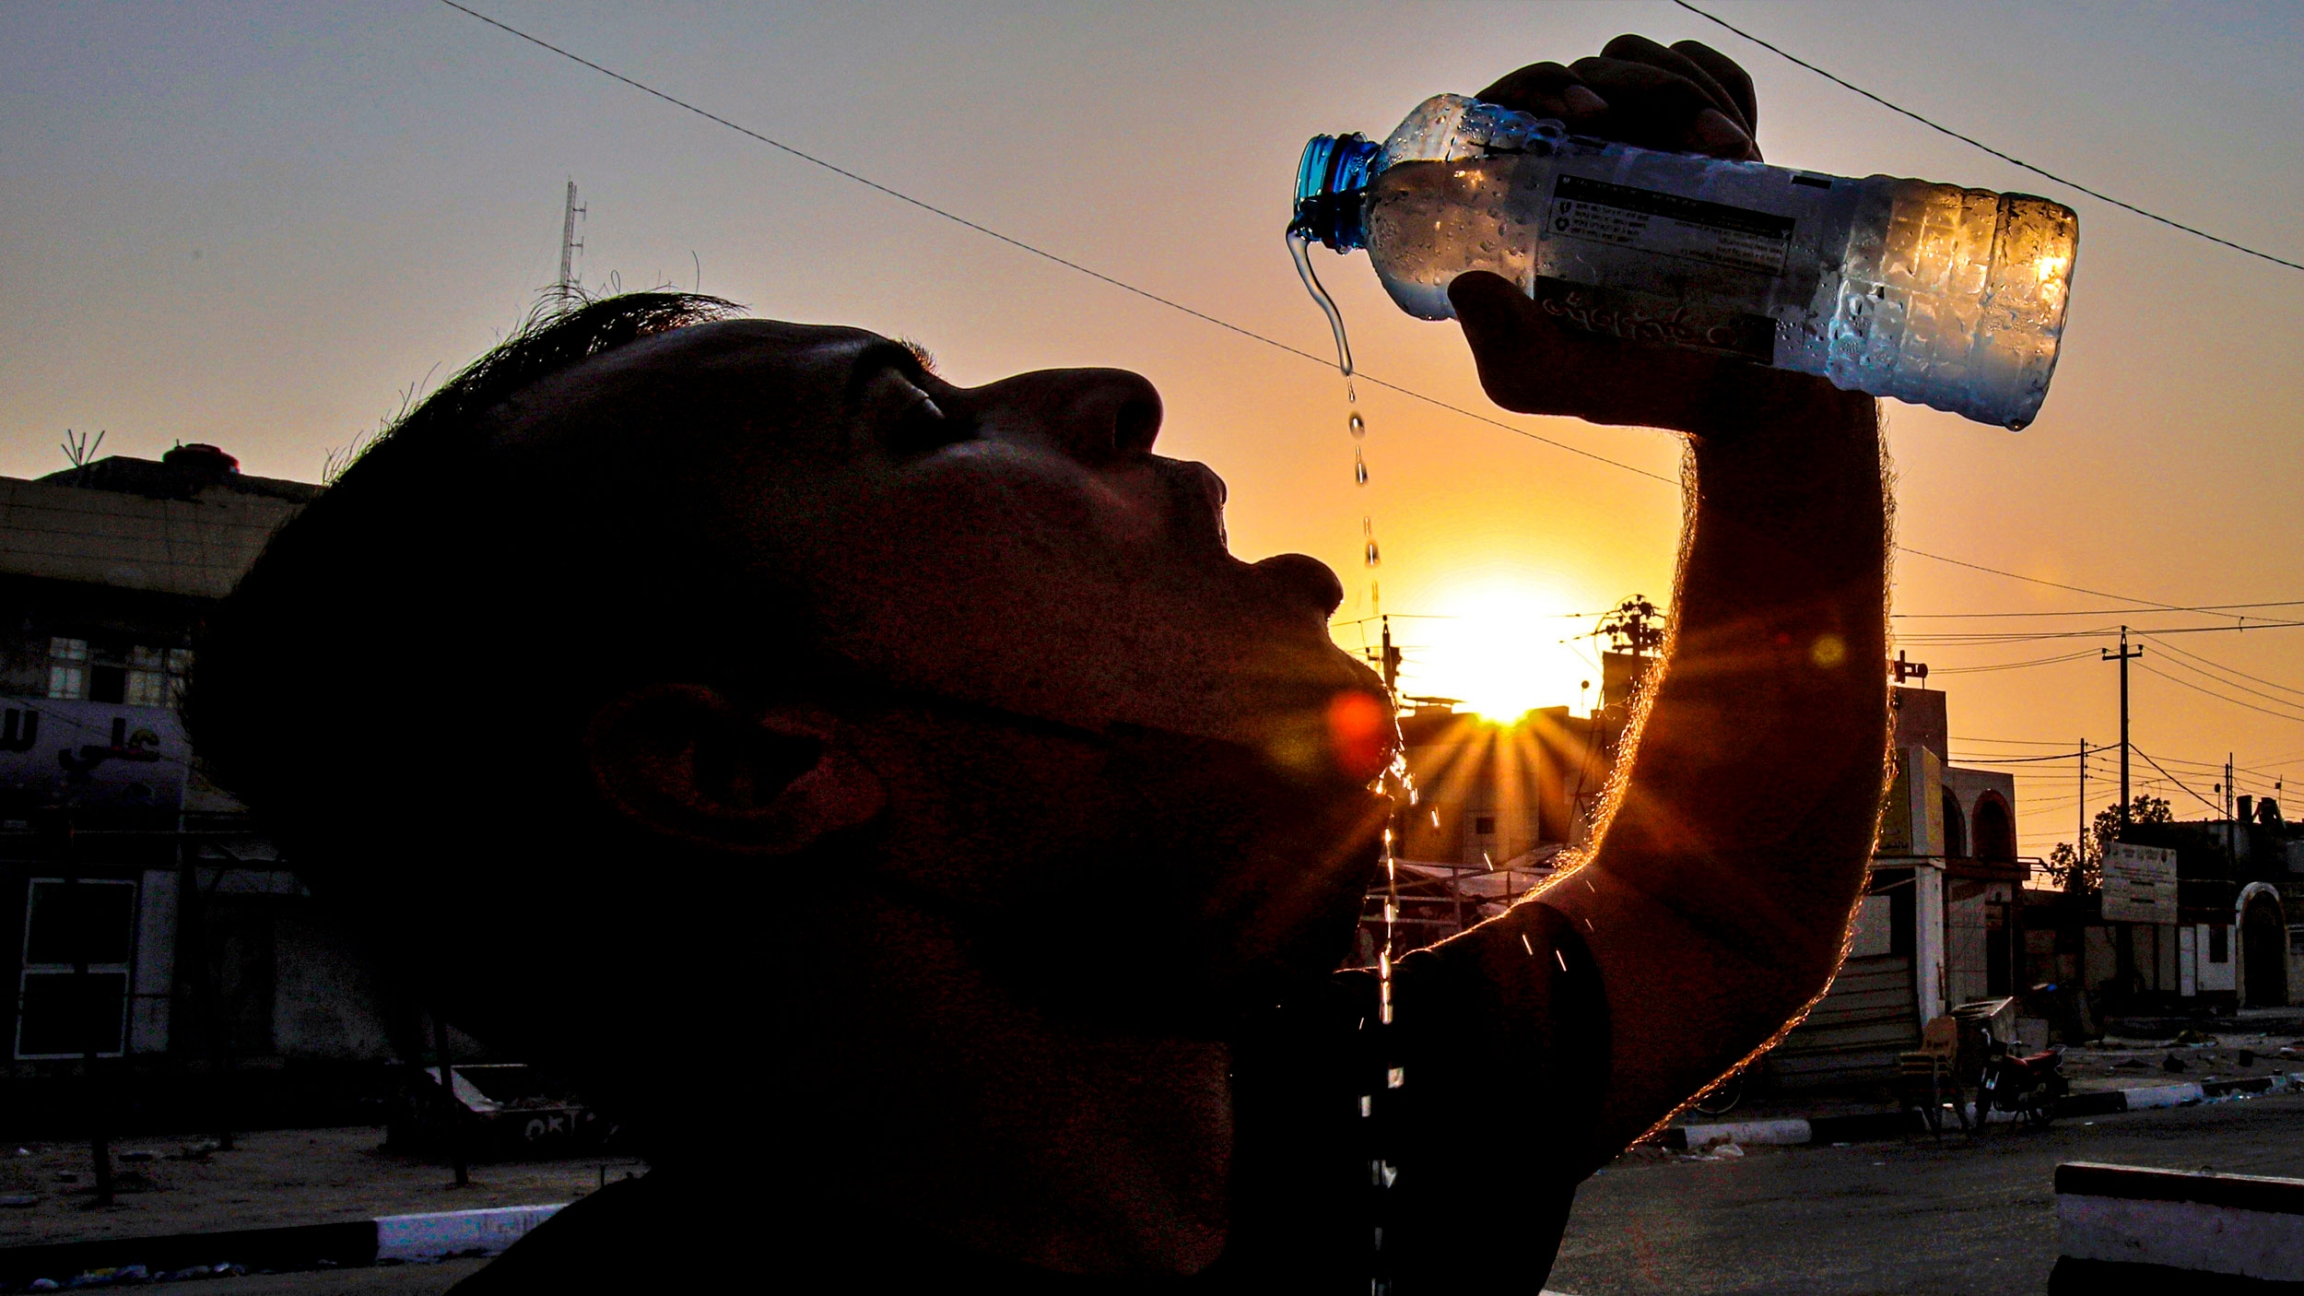 A man is shown in shadow drinking from a water bottle with the sun setting behind him.